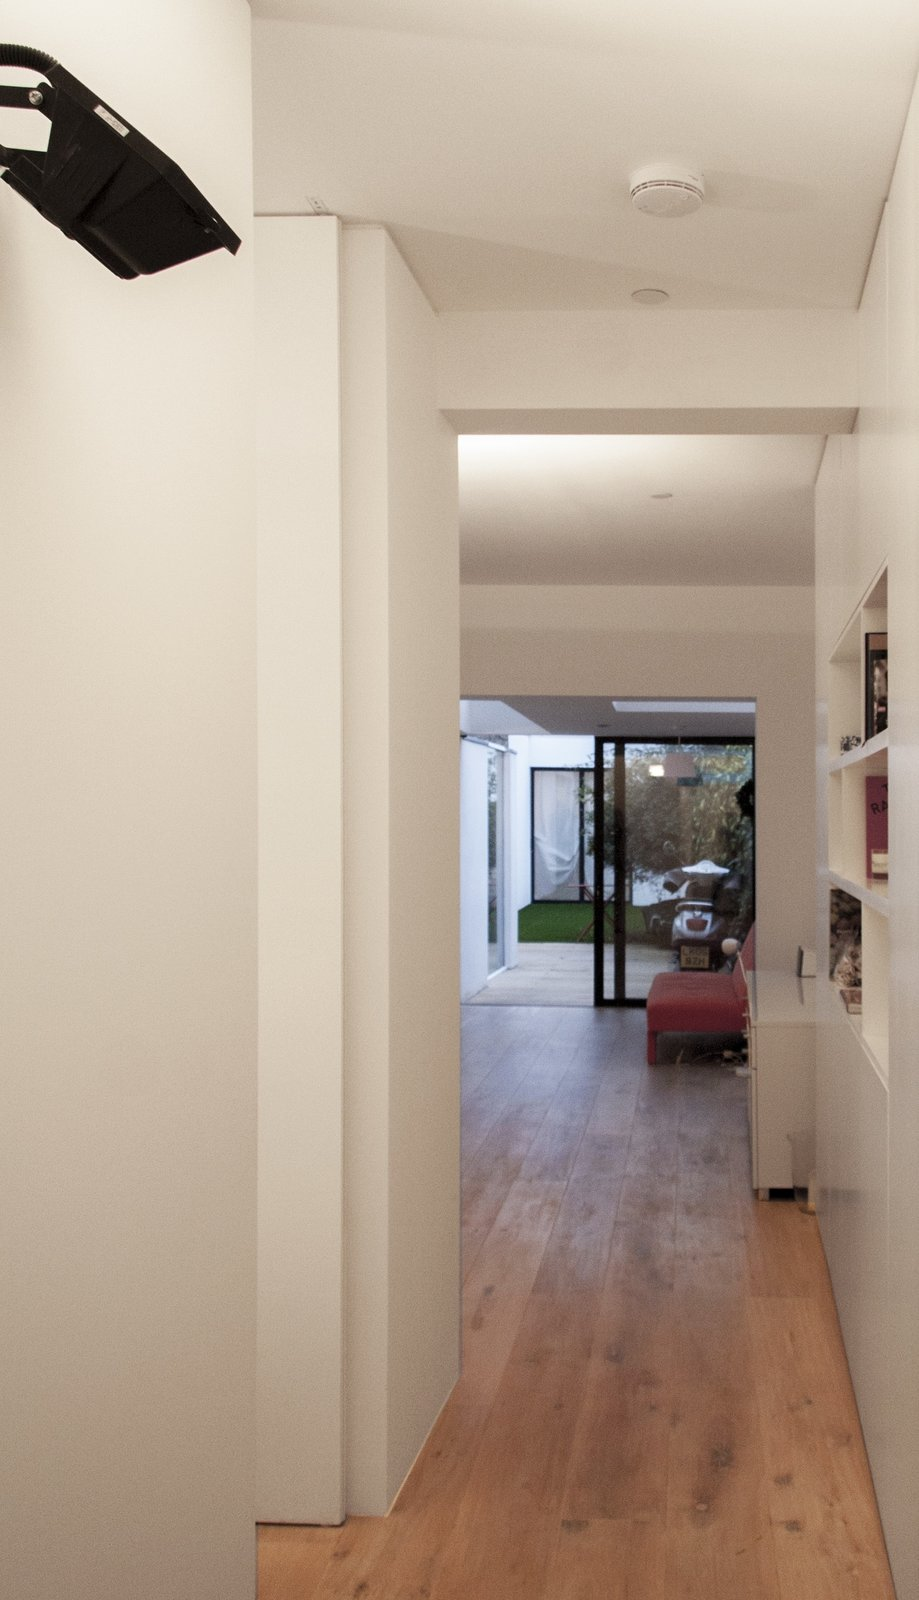 From the entry one gets elongated views toward the back of the scheme but the full extent of the space is elusive, with glimpsed views into spaces beyond, both laterally and longitudinally.  Unité de Rénovation